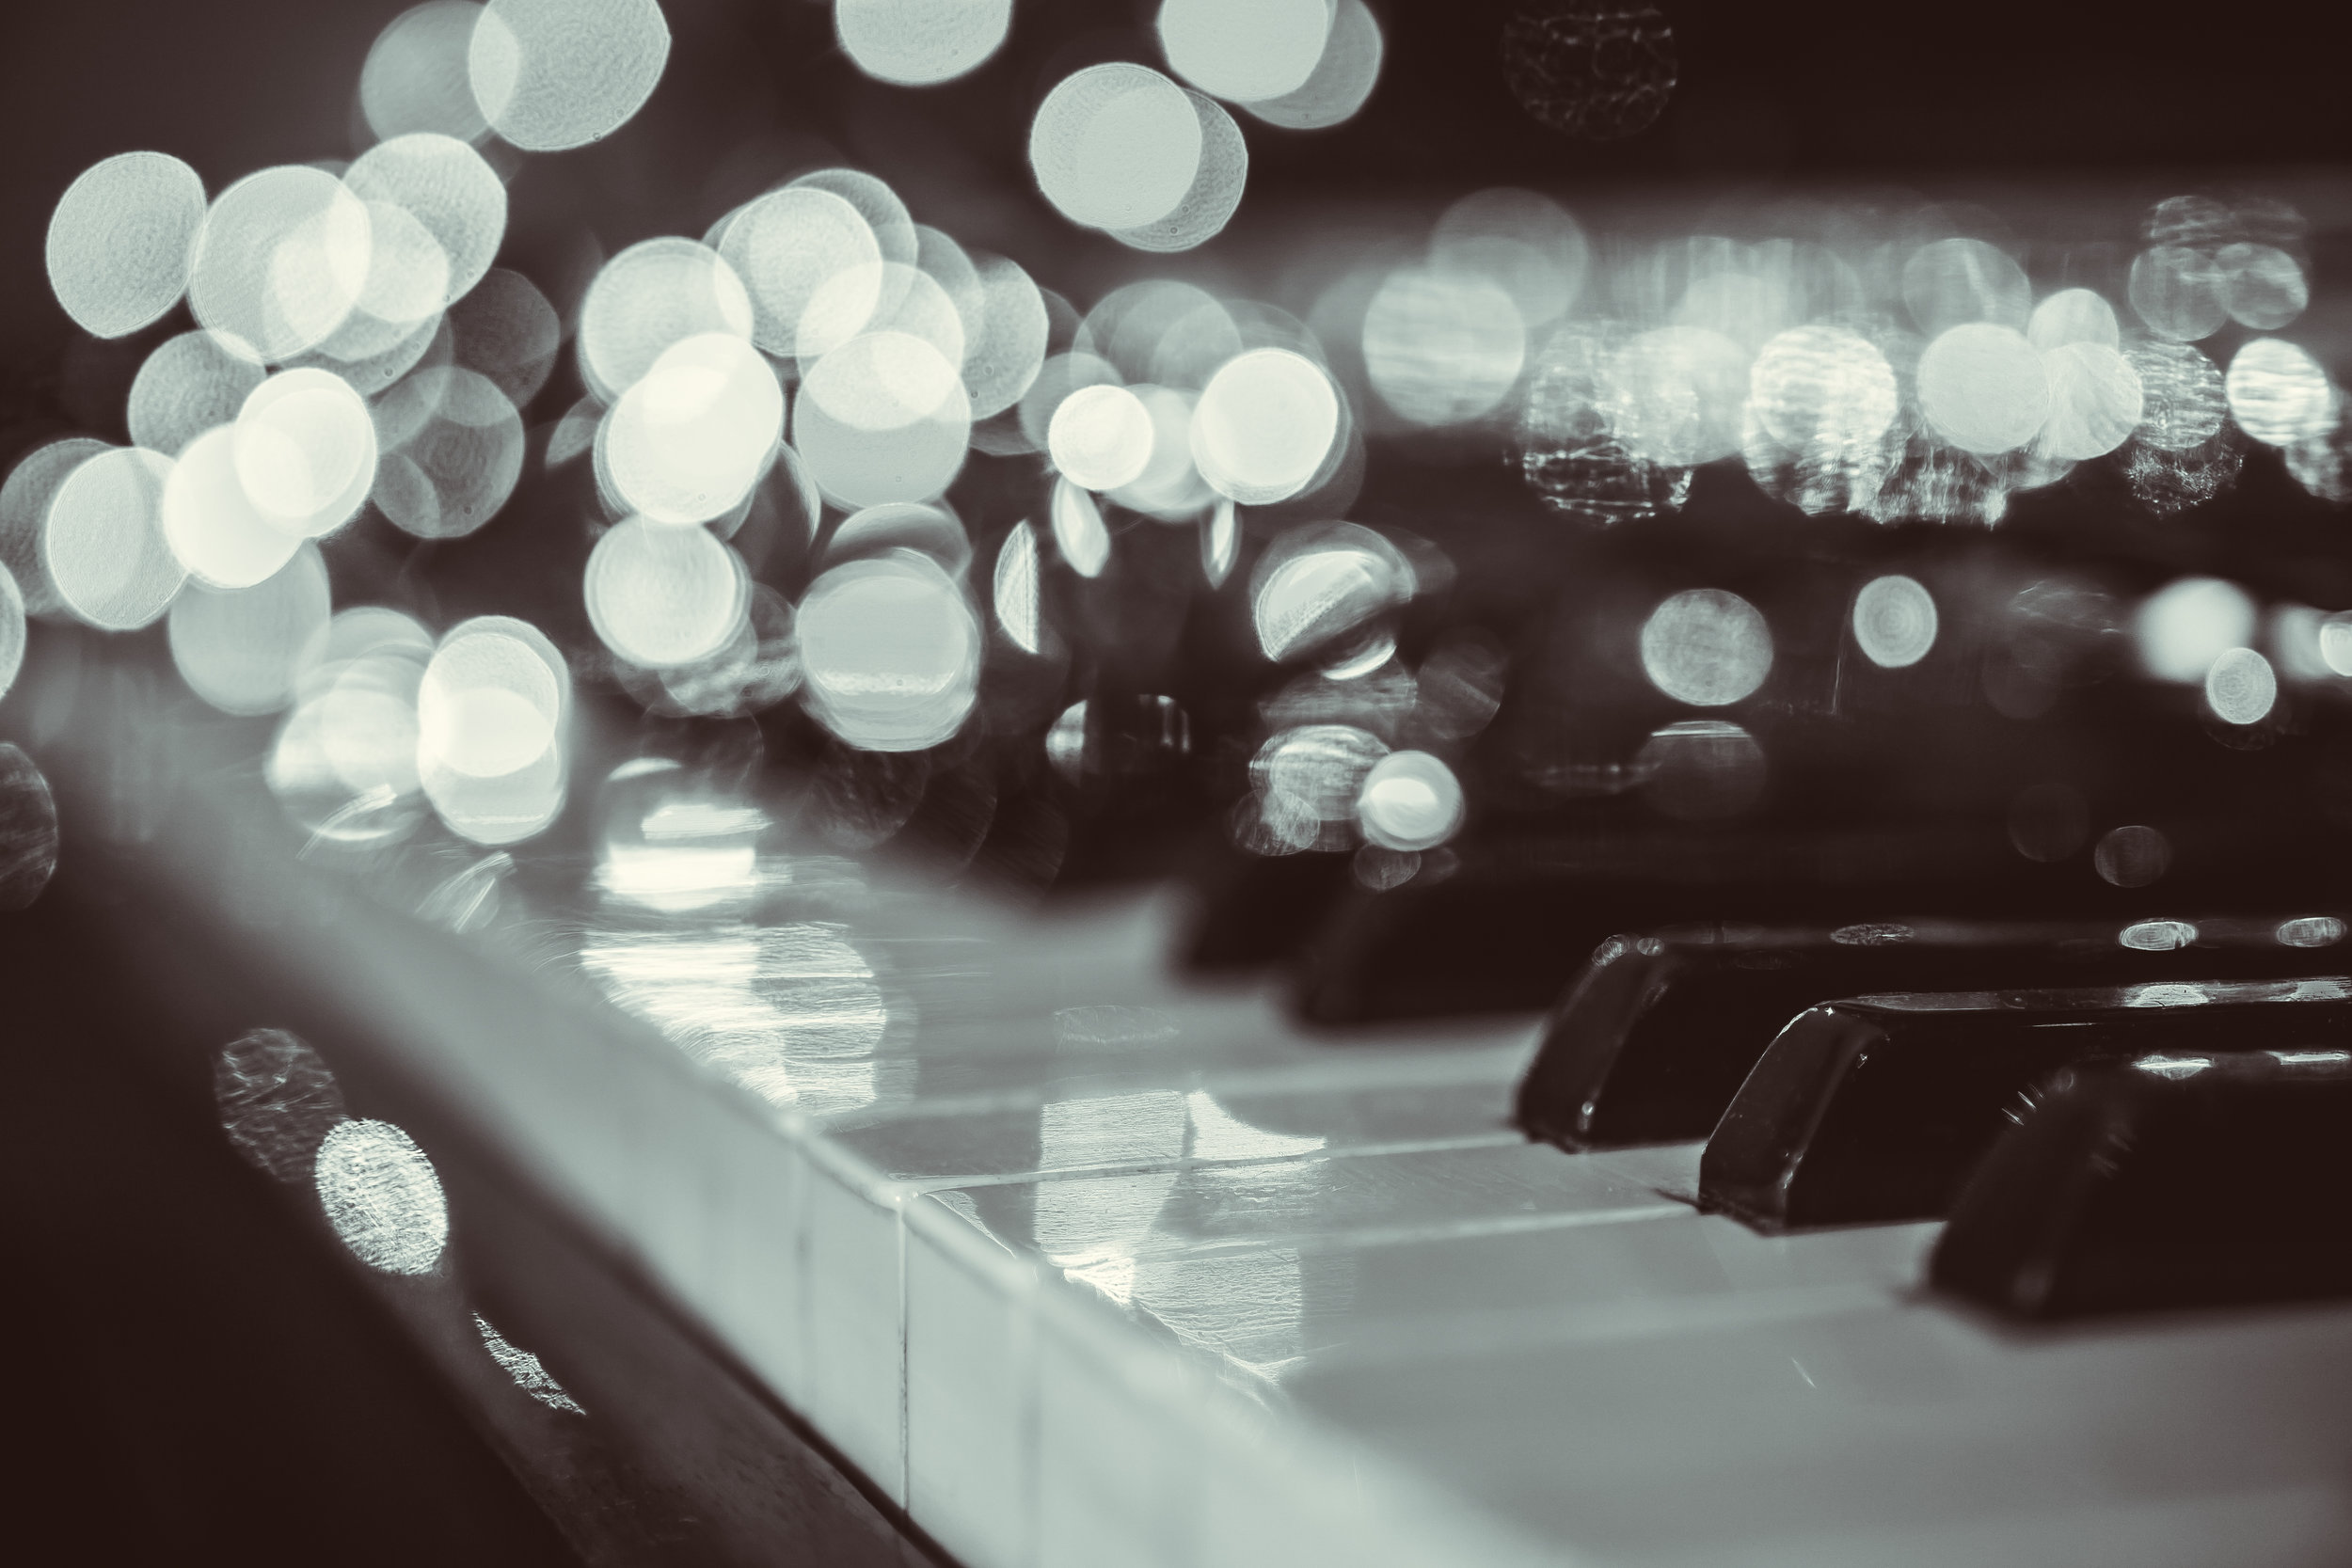 Listen to pianist Sallie Pollack - Click the button below to listen to pianist Sallie Pollack's previous performances.